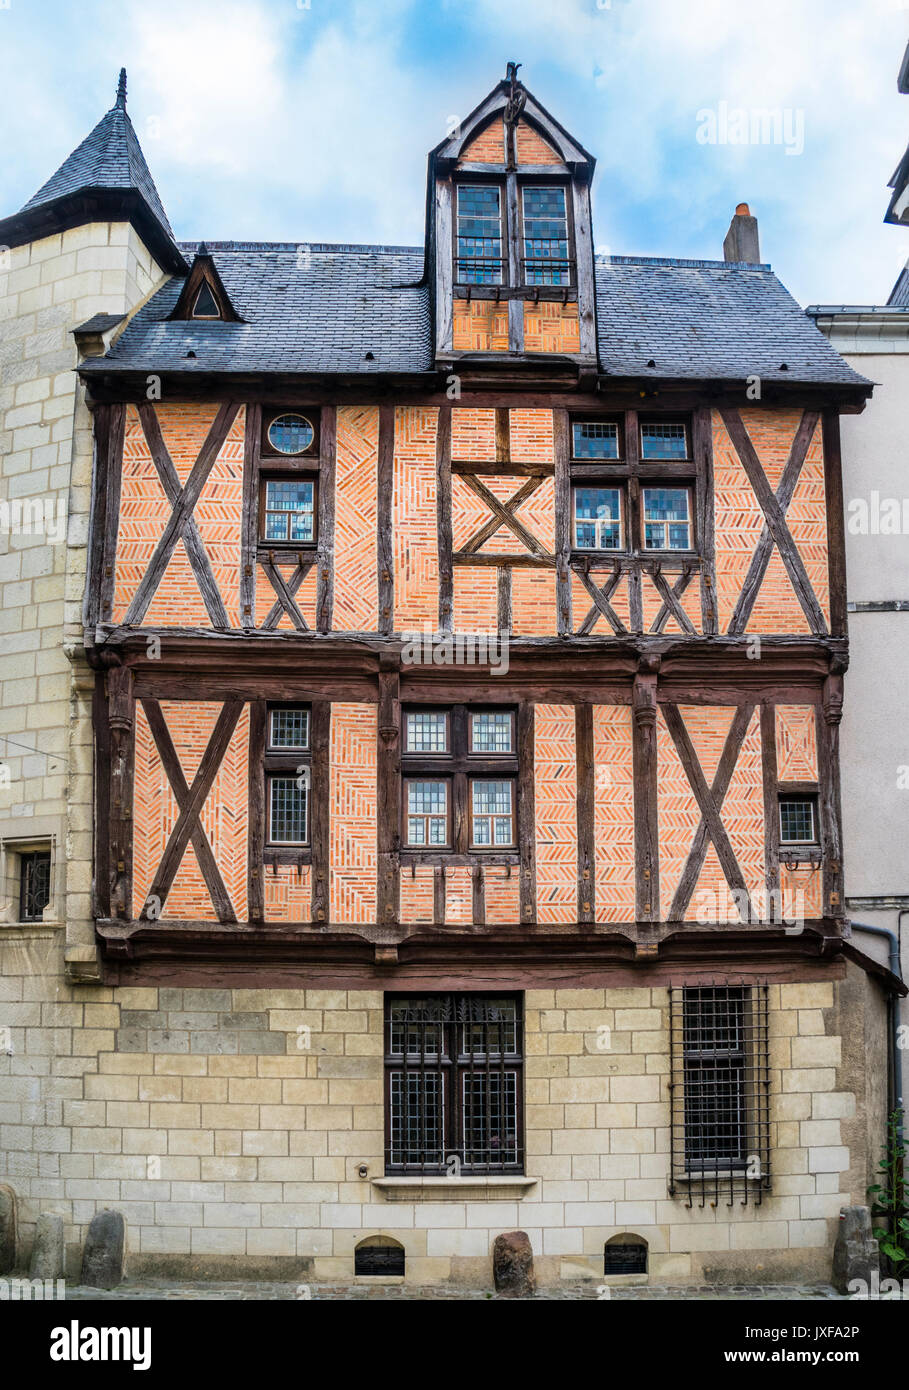 France, Pays De La Loire, Angers, Medieval Half Timbered House At Rue